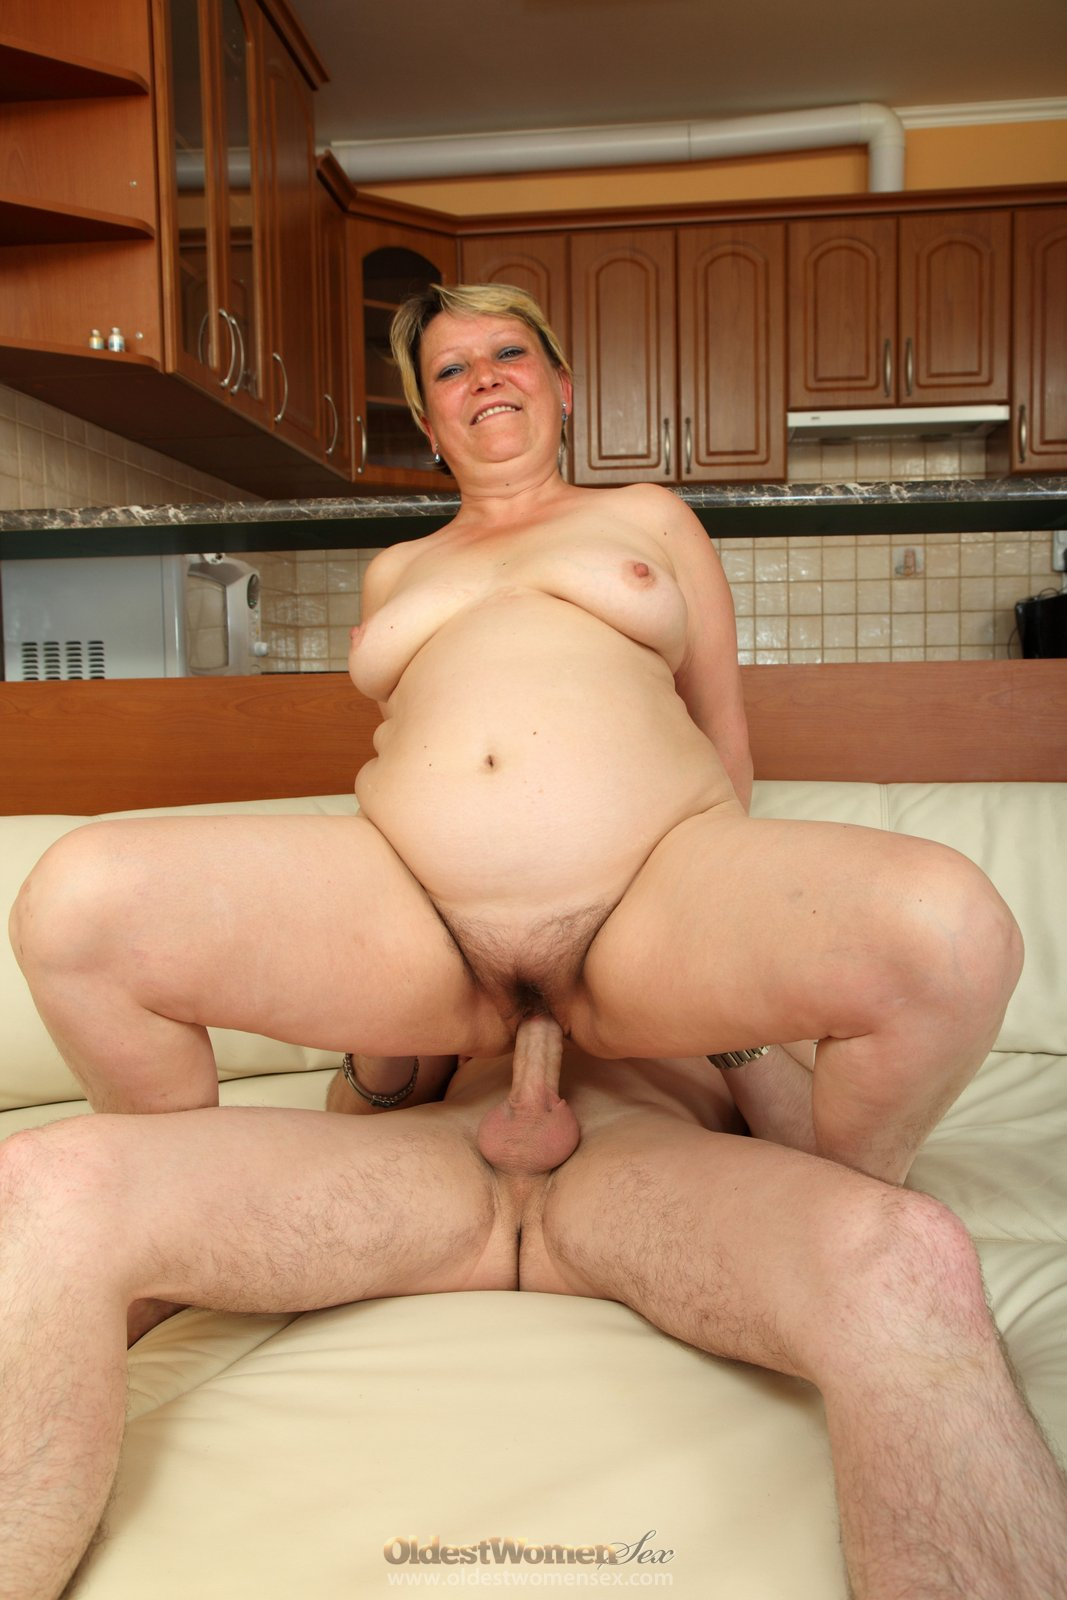 Old Lady Creampie Porn old lady riding - hd porno website archive. comments: 3